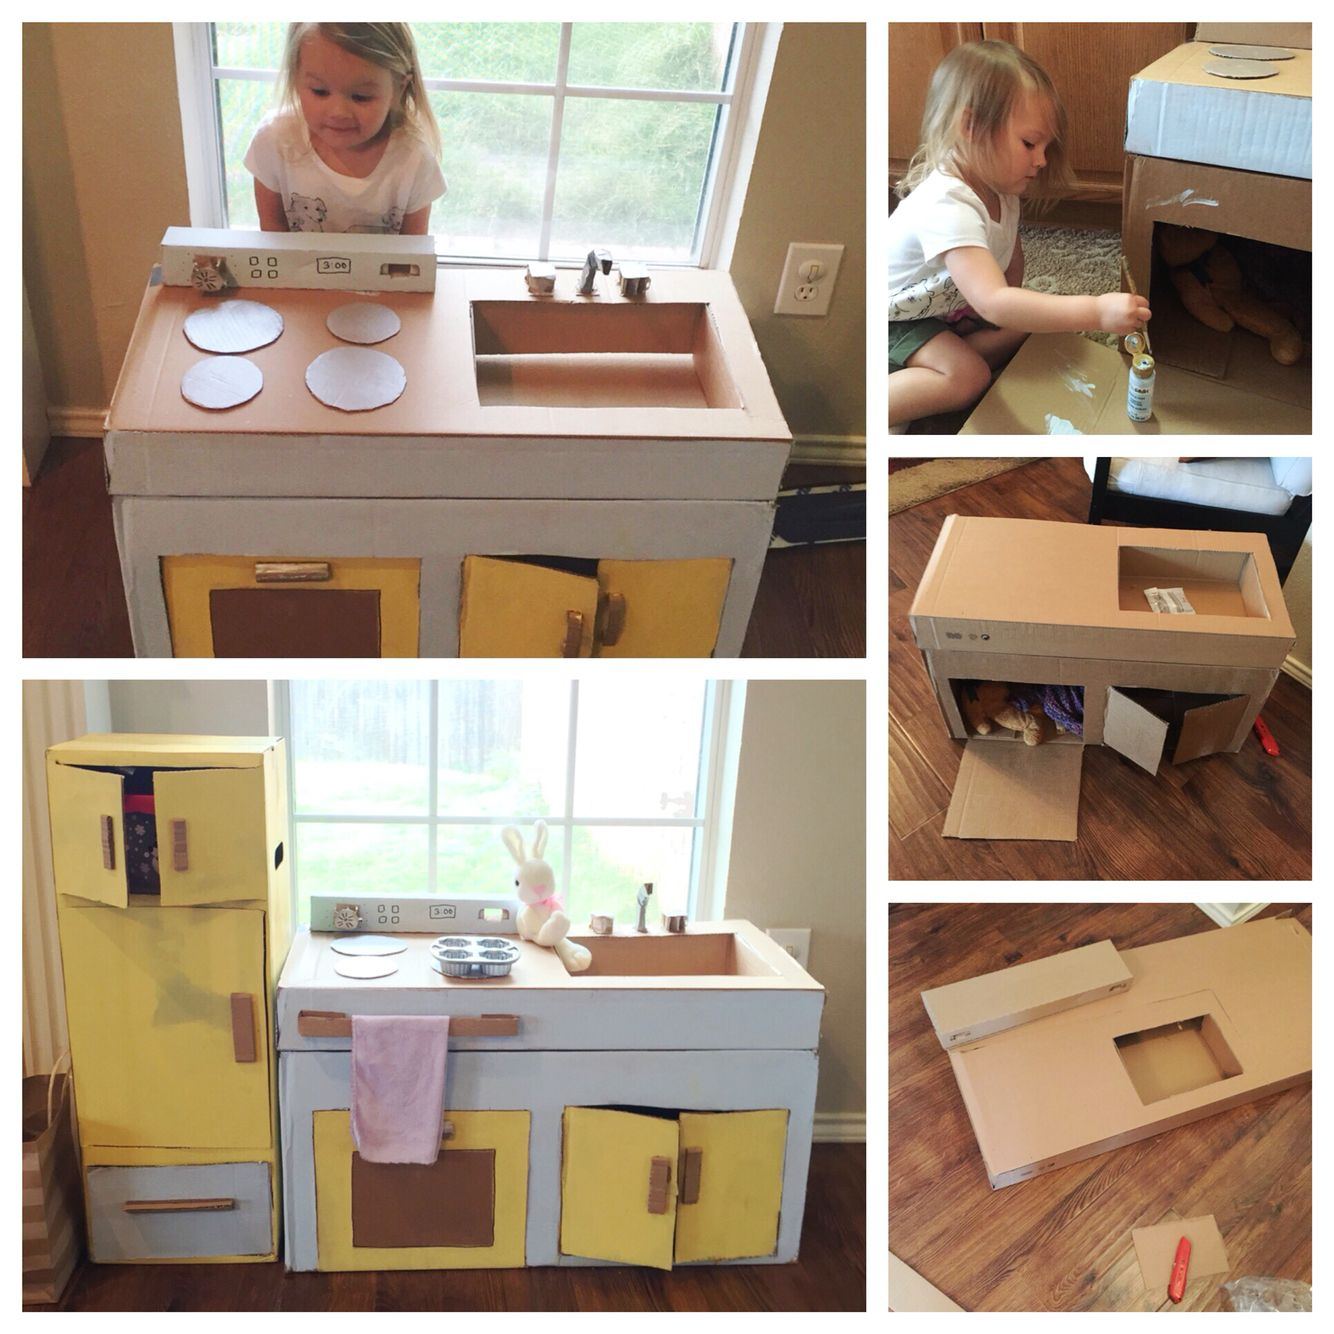 cardboard play kitchen diy kids kitchen cardboard create - Diy Kids Kitchen